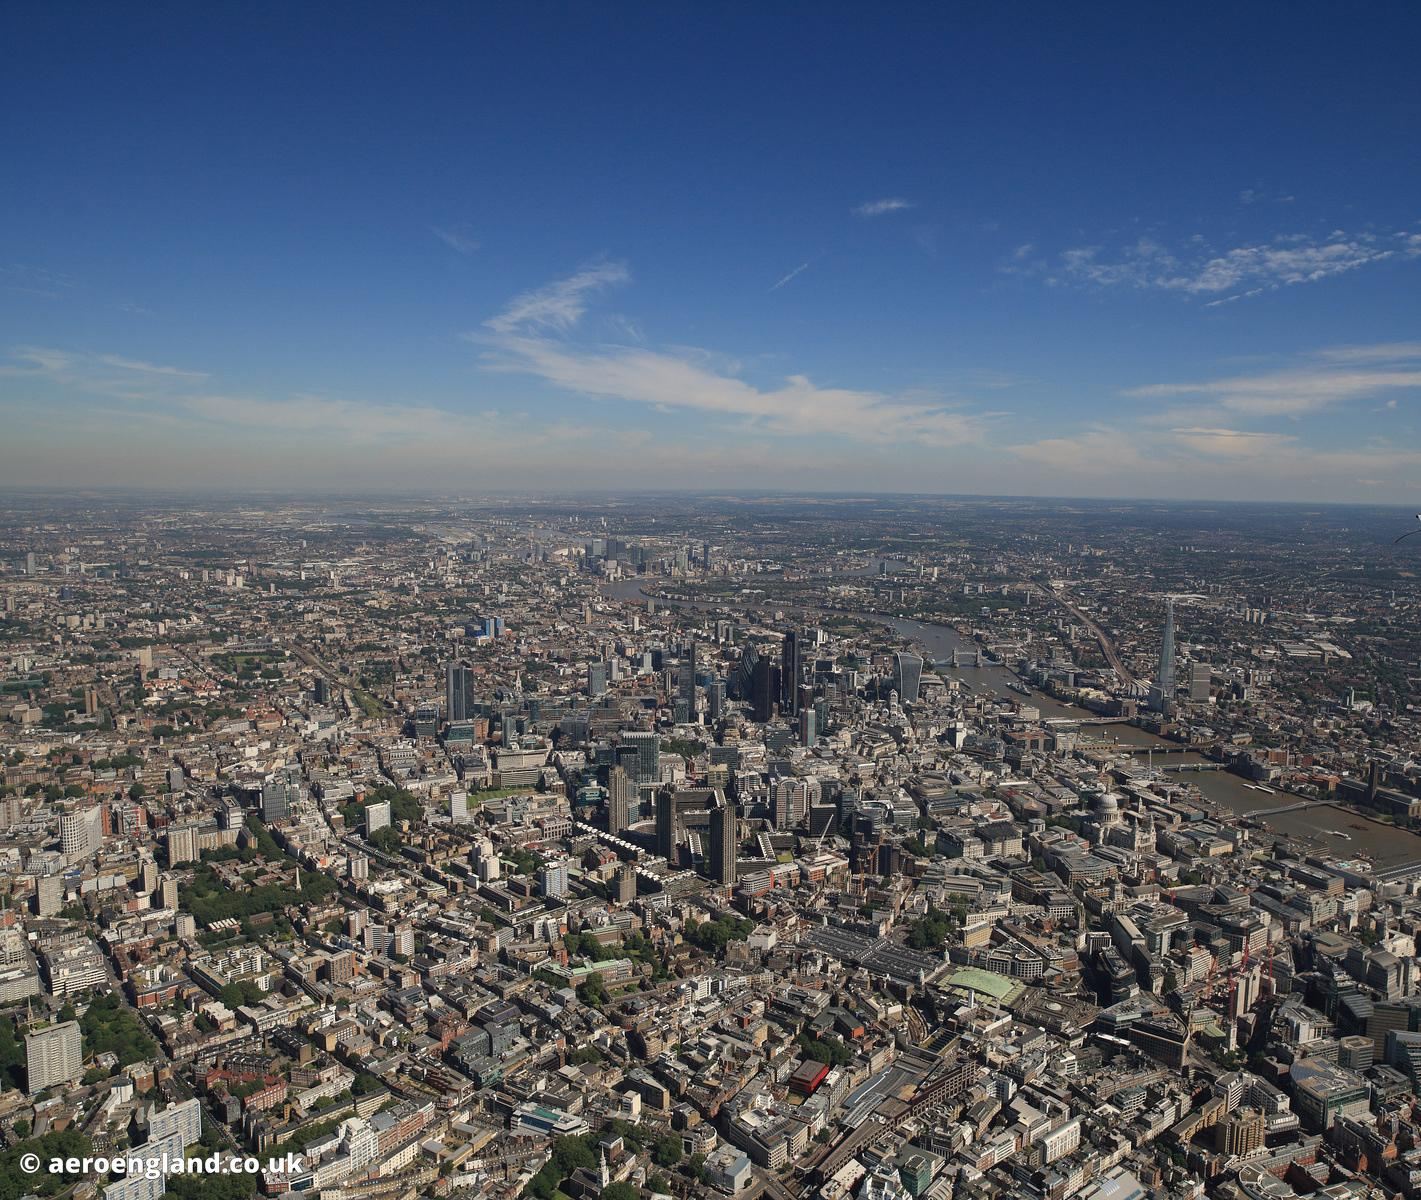 square photograph of the square mile -  City of London